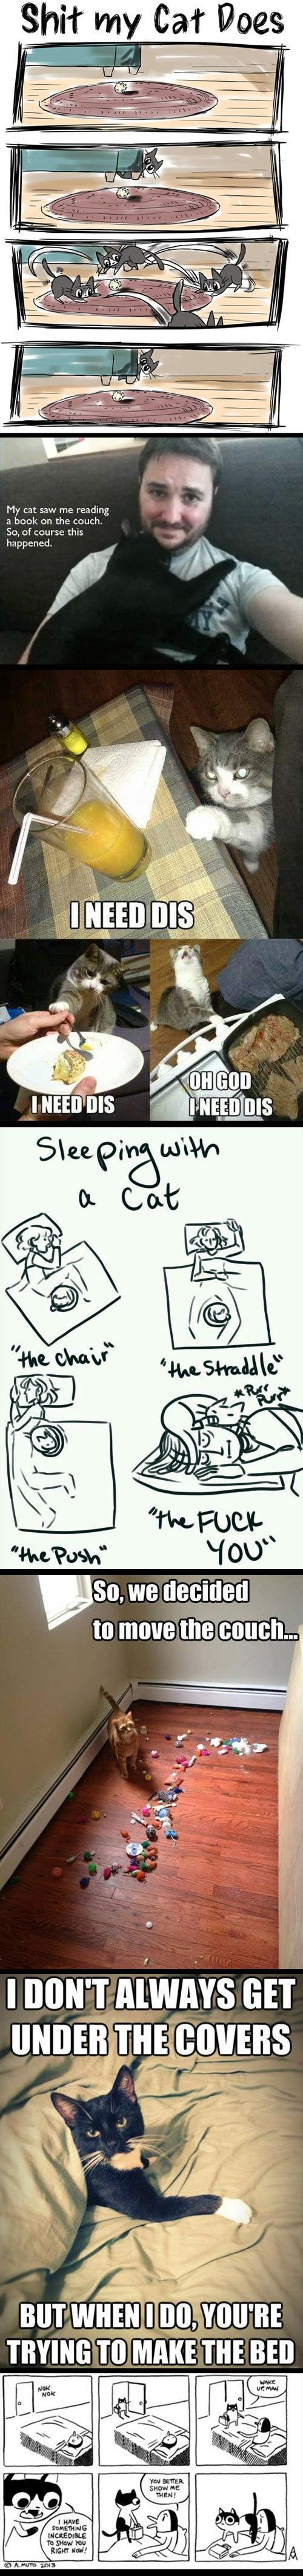 Cat owners will understand...: